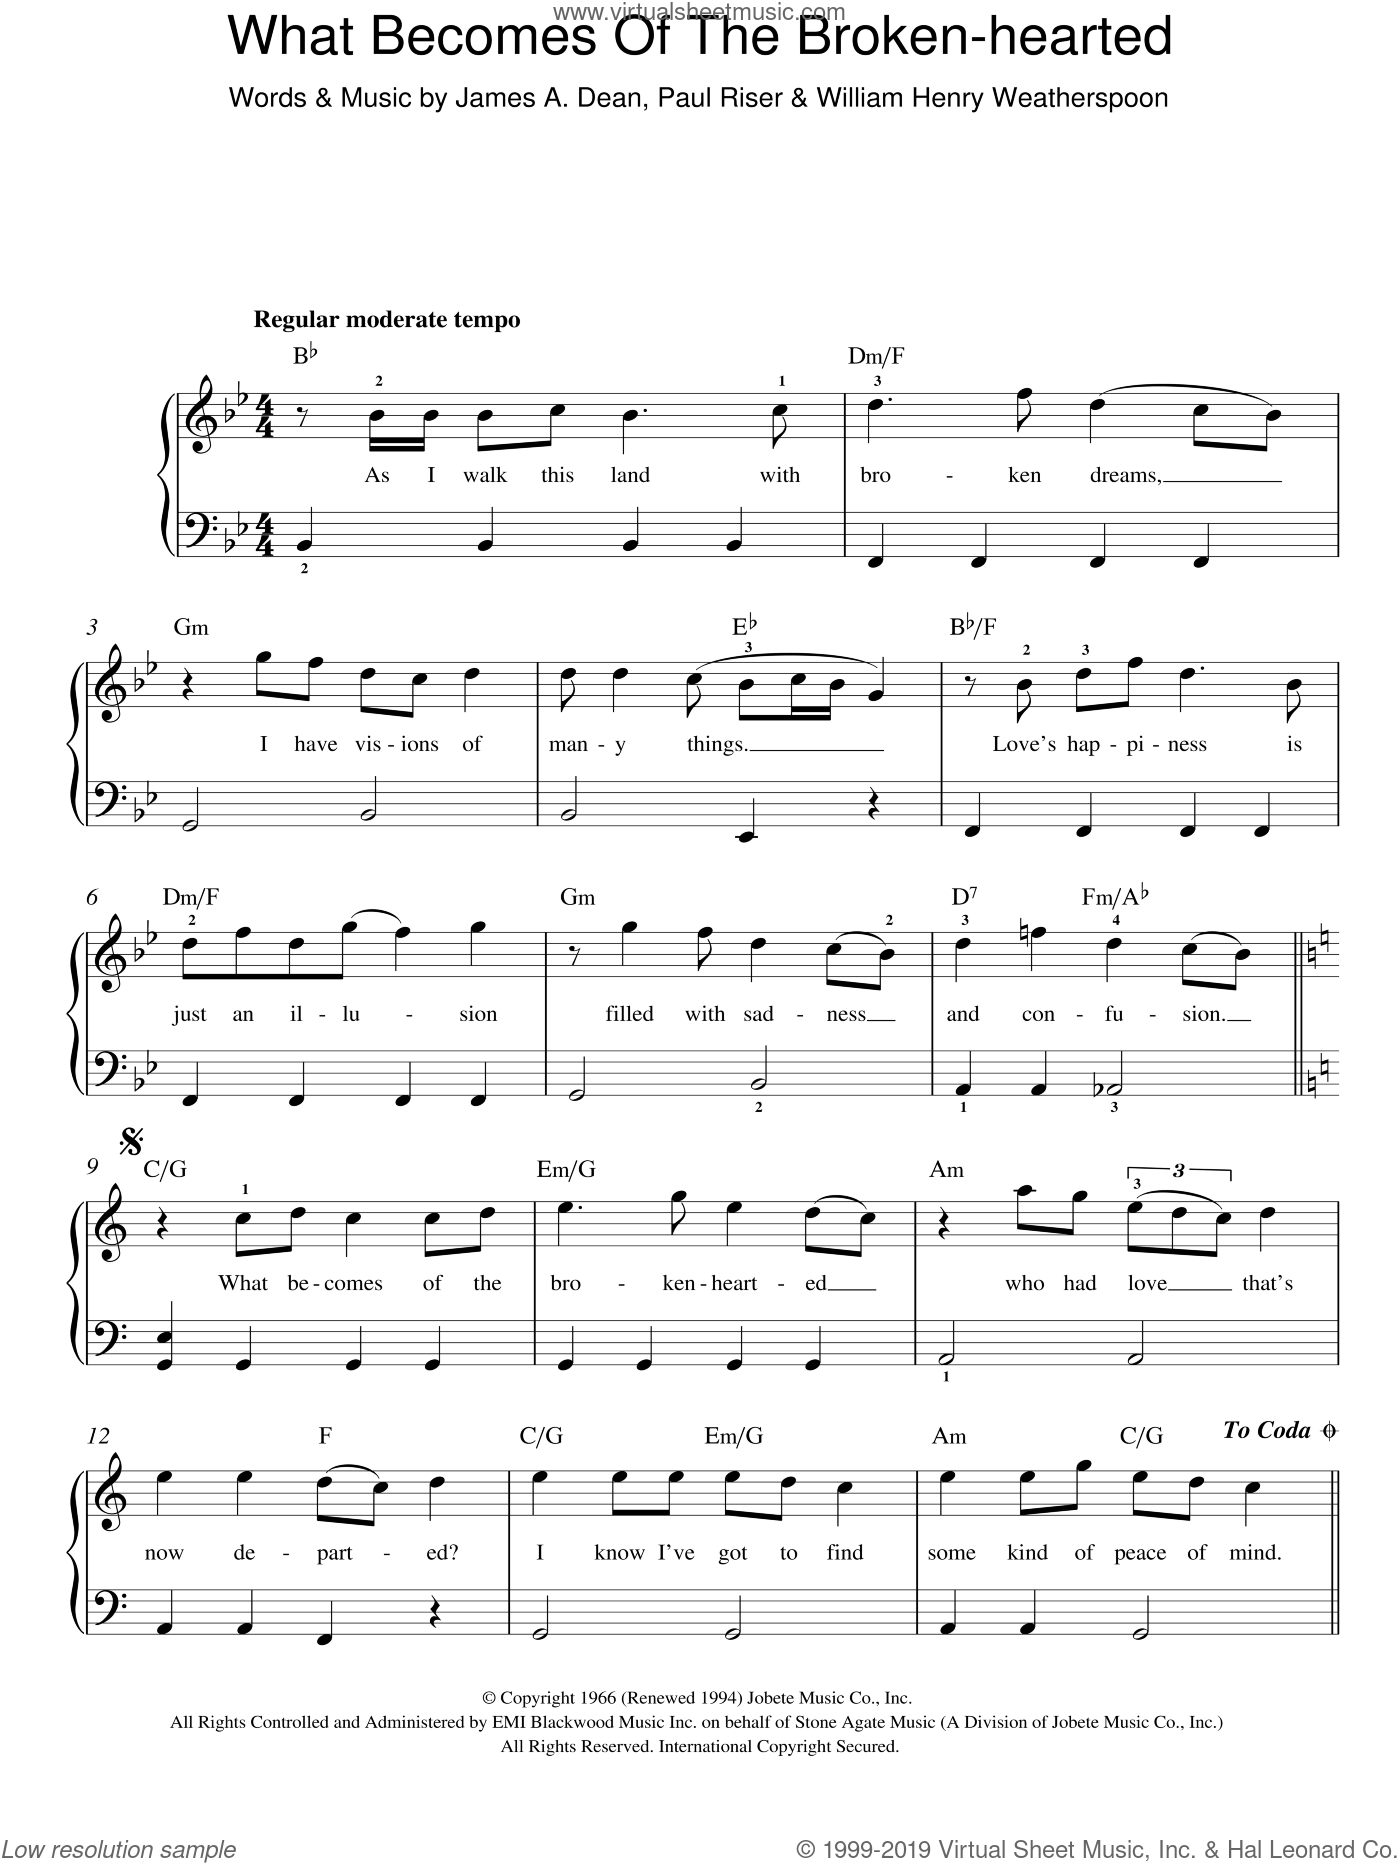 What Becomes Of The Brokenhearted ? sheet music for piano solo by William Weatherspoon